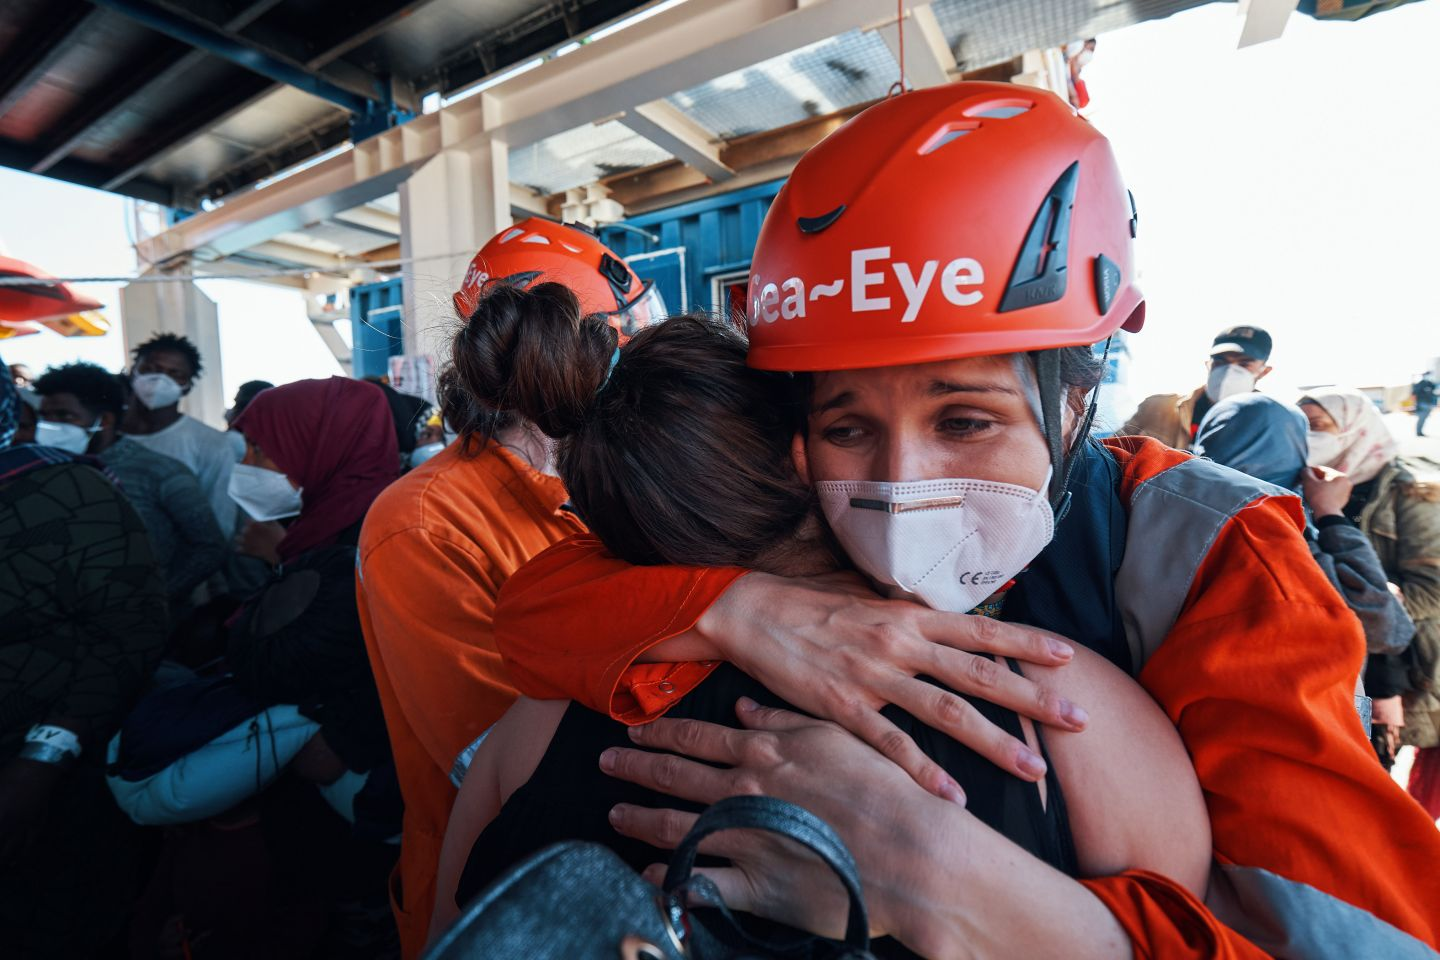 Refugees, dignity and humanity: A Sea-Eye 4 crew member reflects on rescuing 408 lives